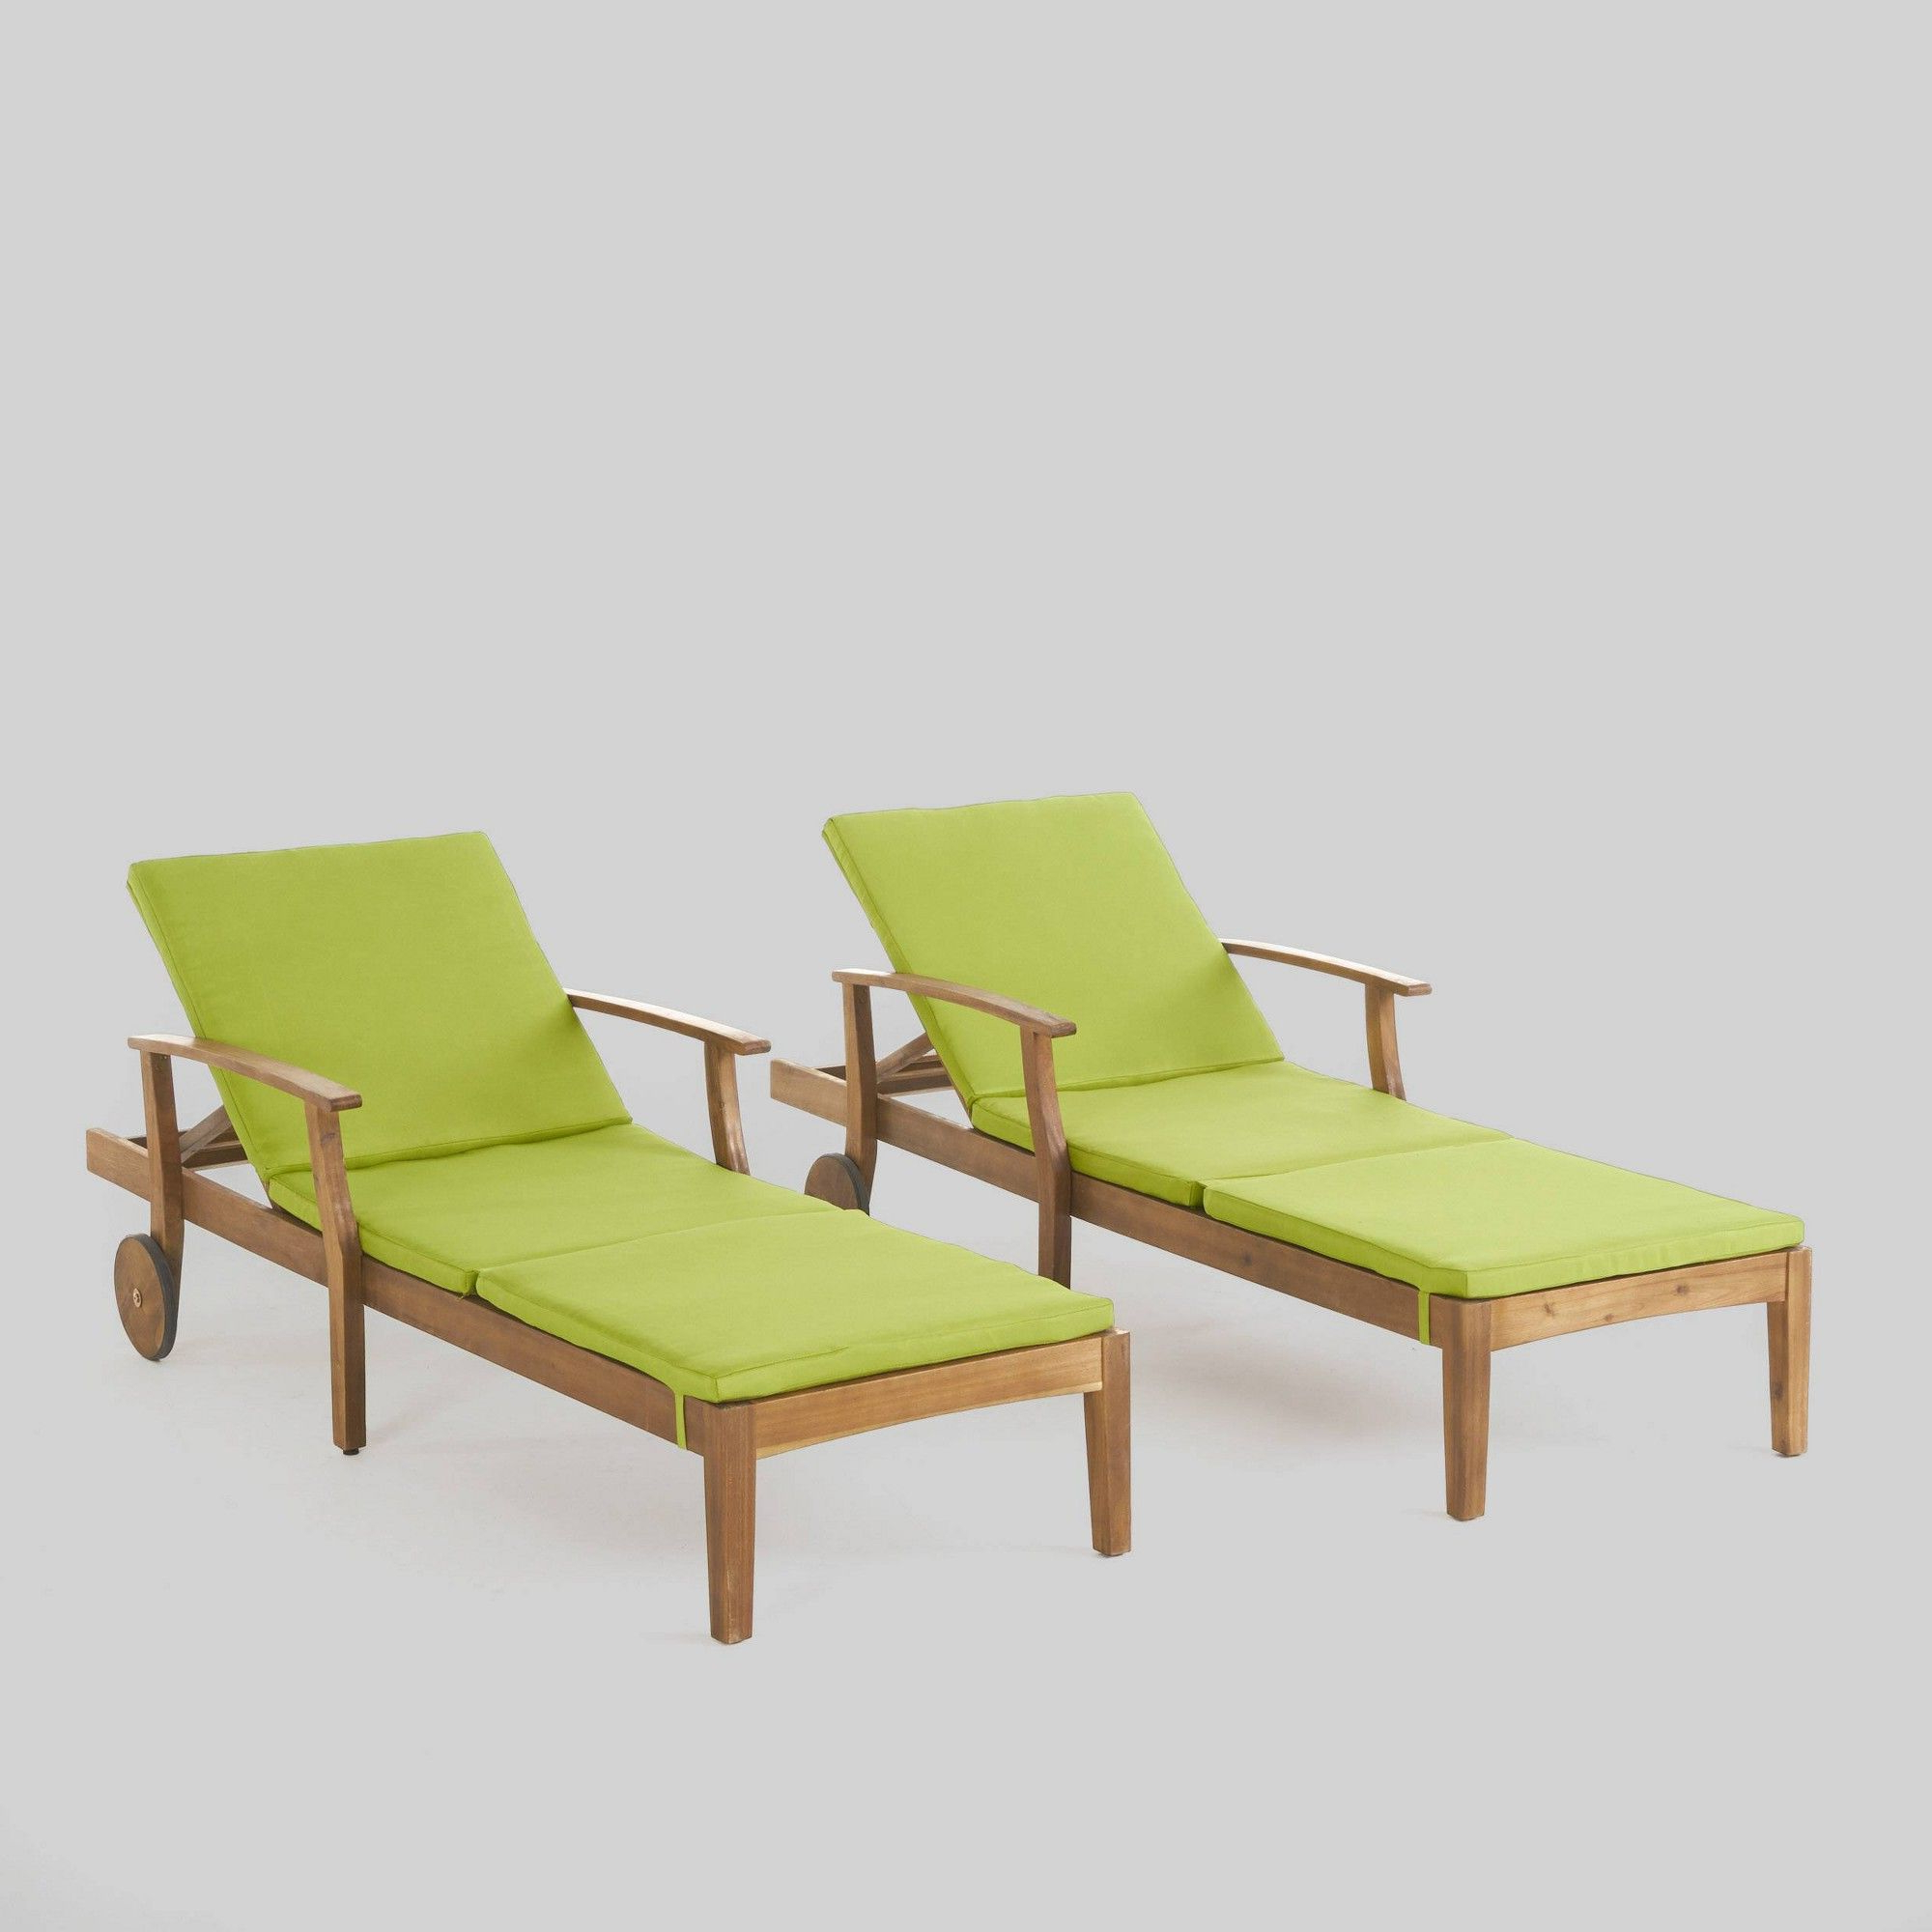 Well Known Perla Outdoor Acacia Wood Chaise Lounge With Cushion With Perla 2Pk Acacia Wood Patio Chaise Lounge – Teak/green (Gallery 12 of 25)